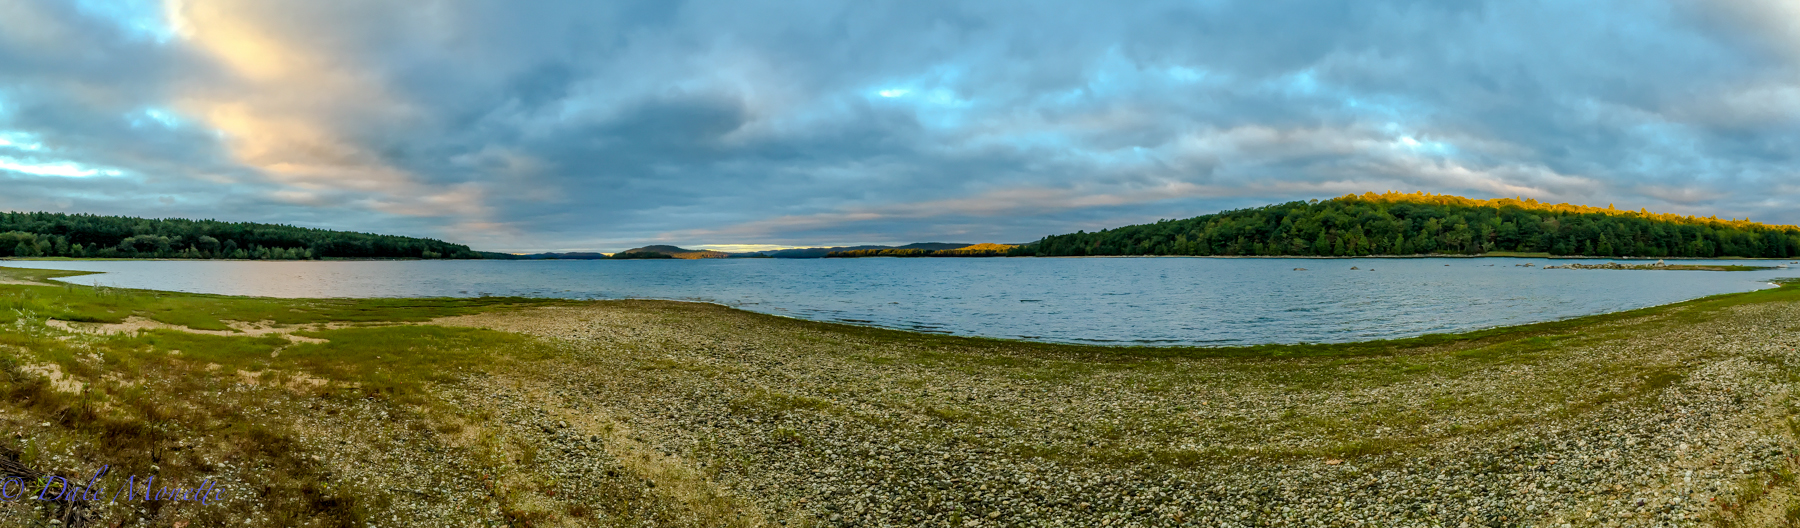 Early morning sun on the tops of the mountains in northern Quabbin.  9/14/15